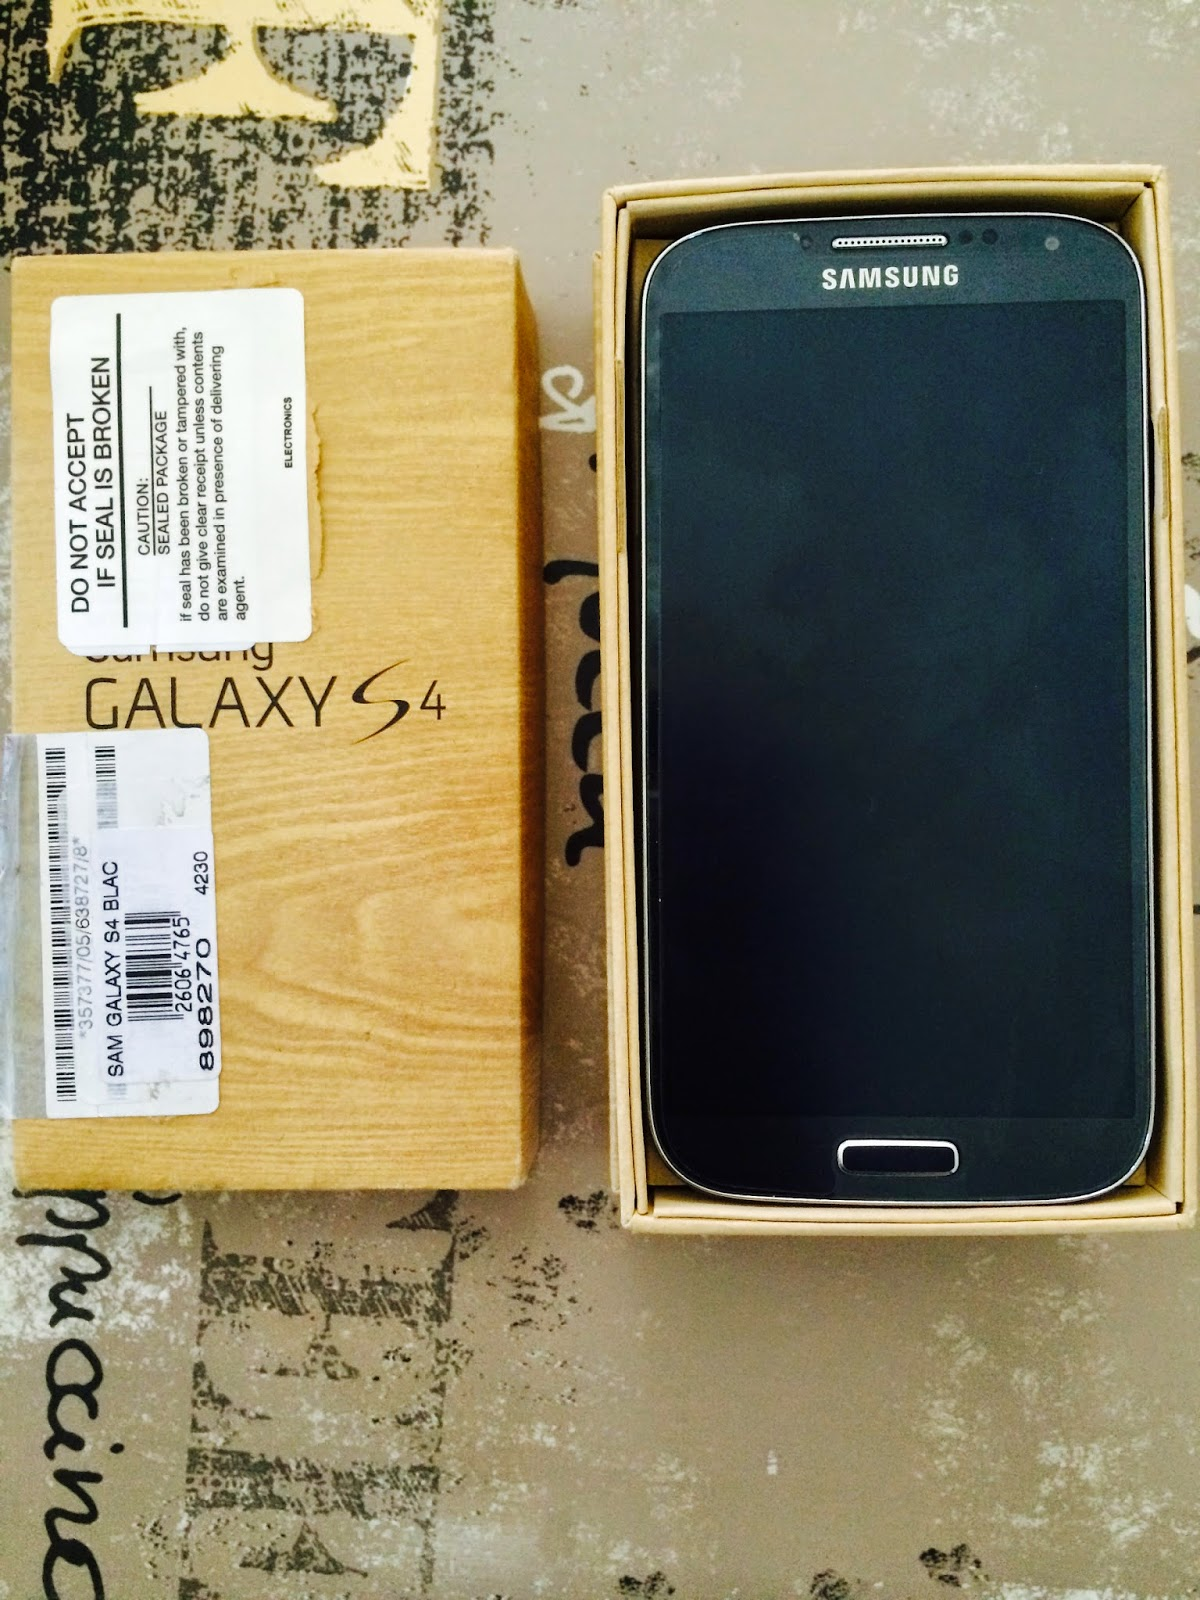 A vendre, Samsung Galaxy S4, le bon coin, happy journal, occasion